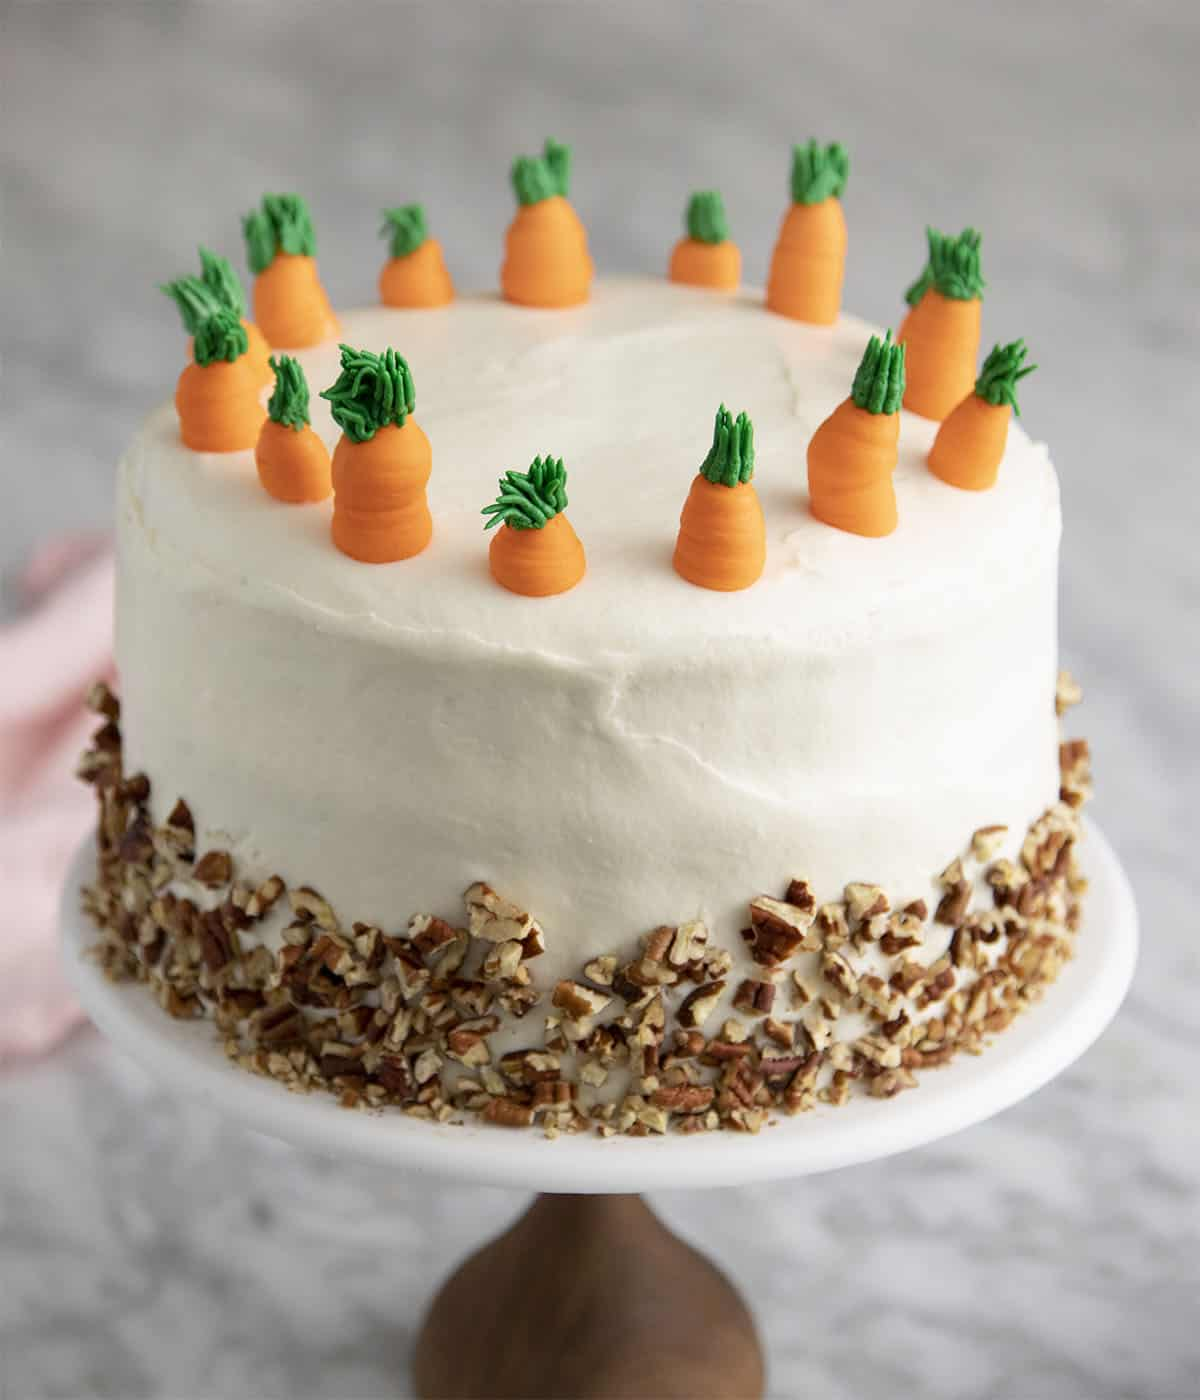 A delicious carrot cake on a white marble table.